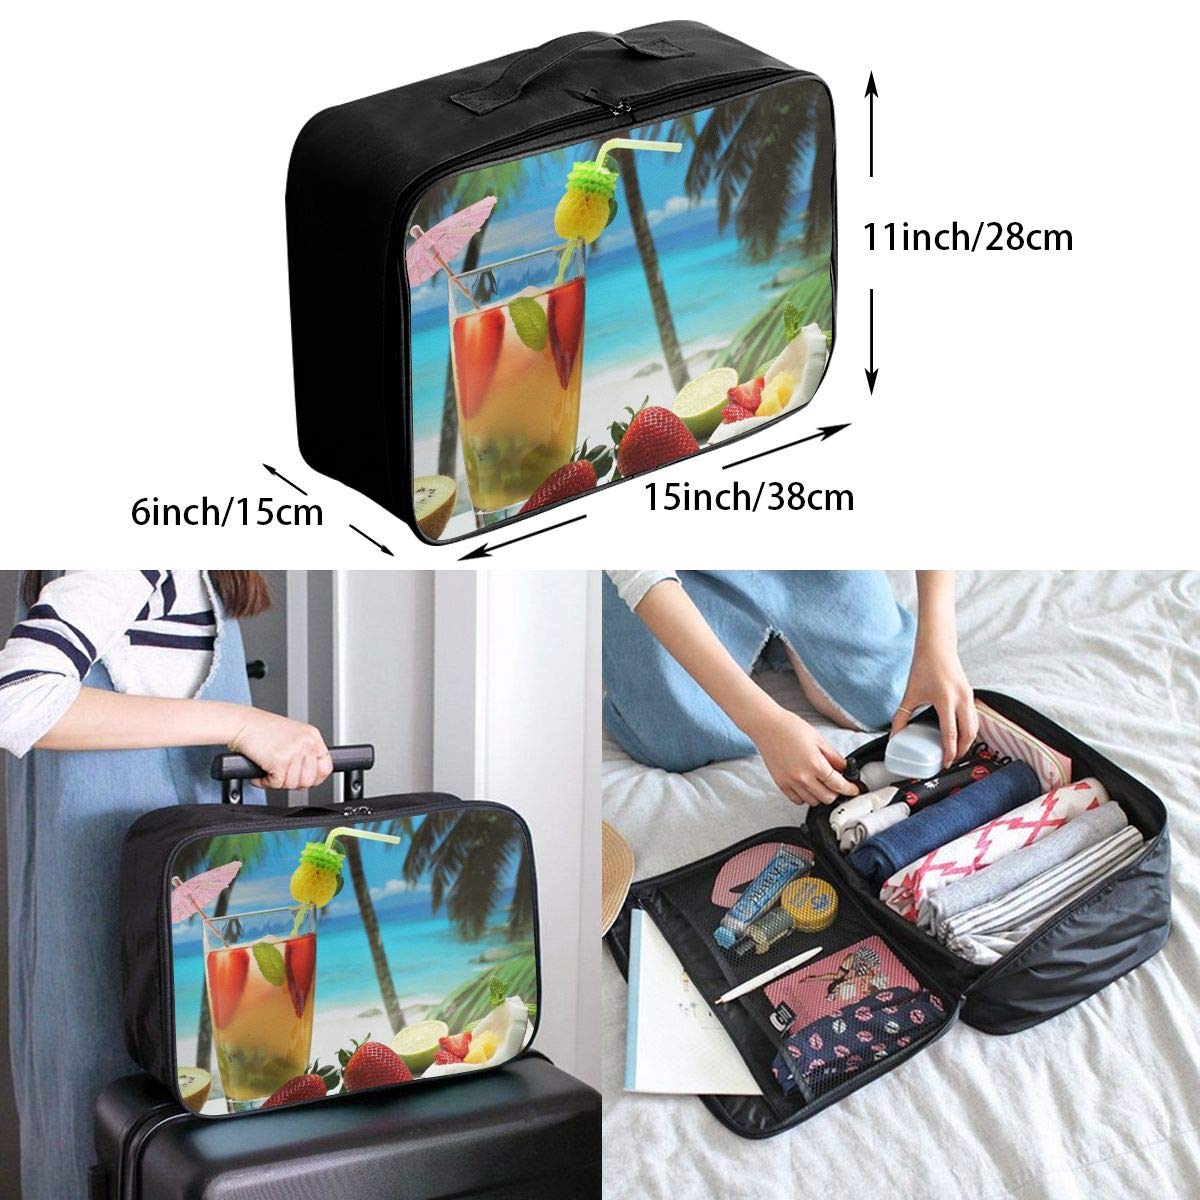 Travel Luggage Duffle Bag Lightweight Portable Handbag Fruity Cocktail Large Capacity Waterproof Foldable Storage Tote